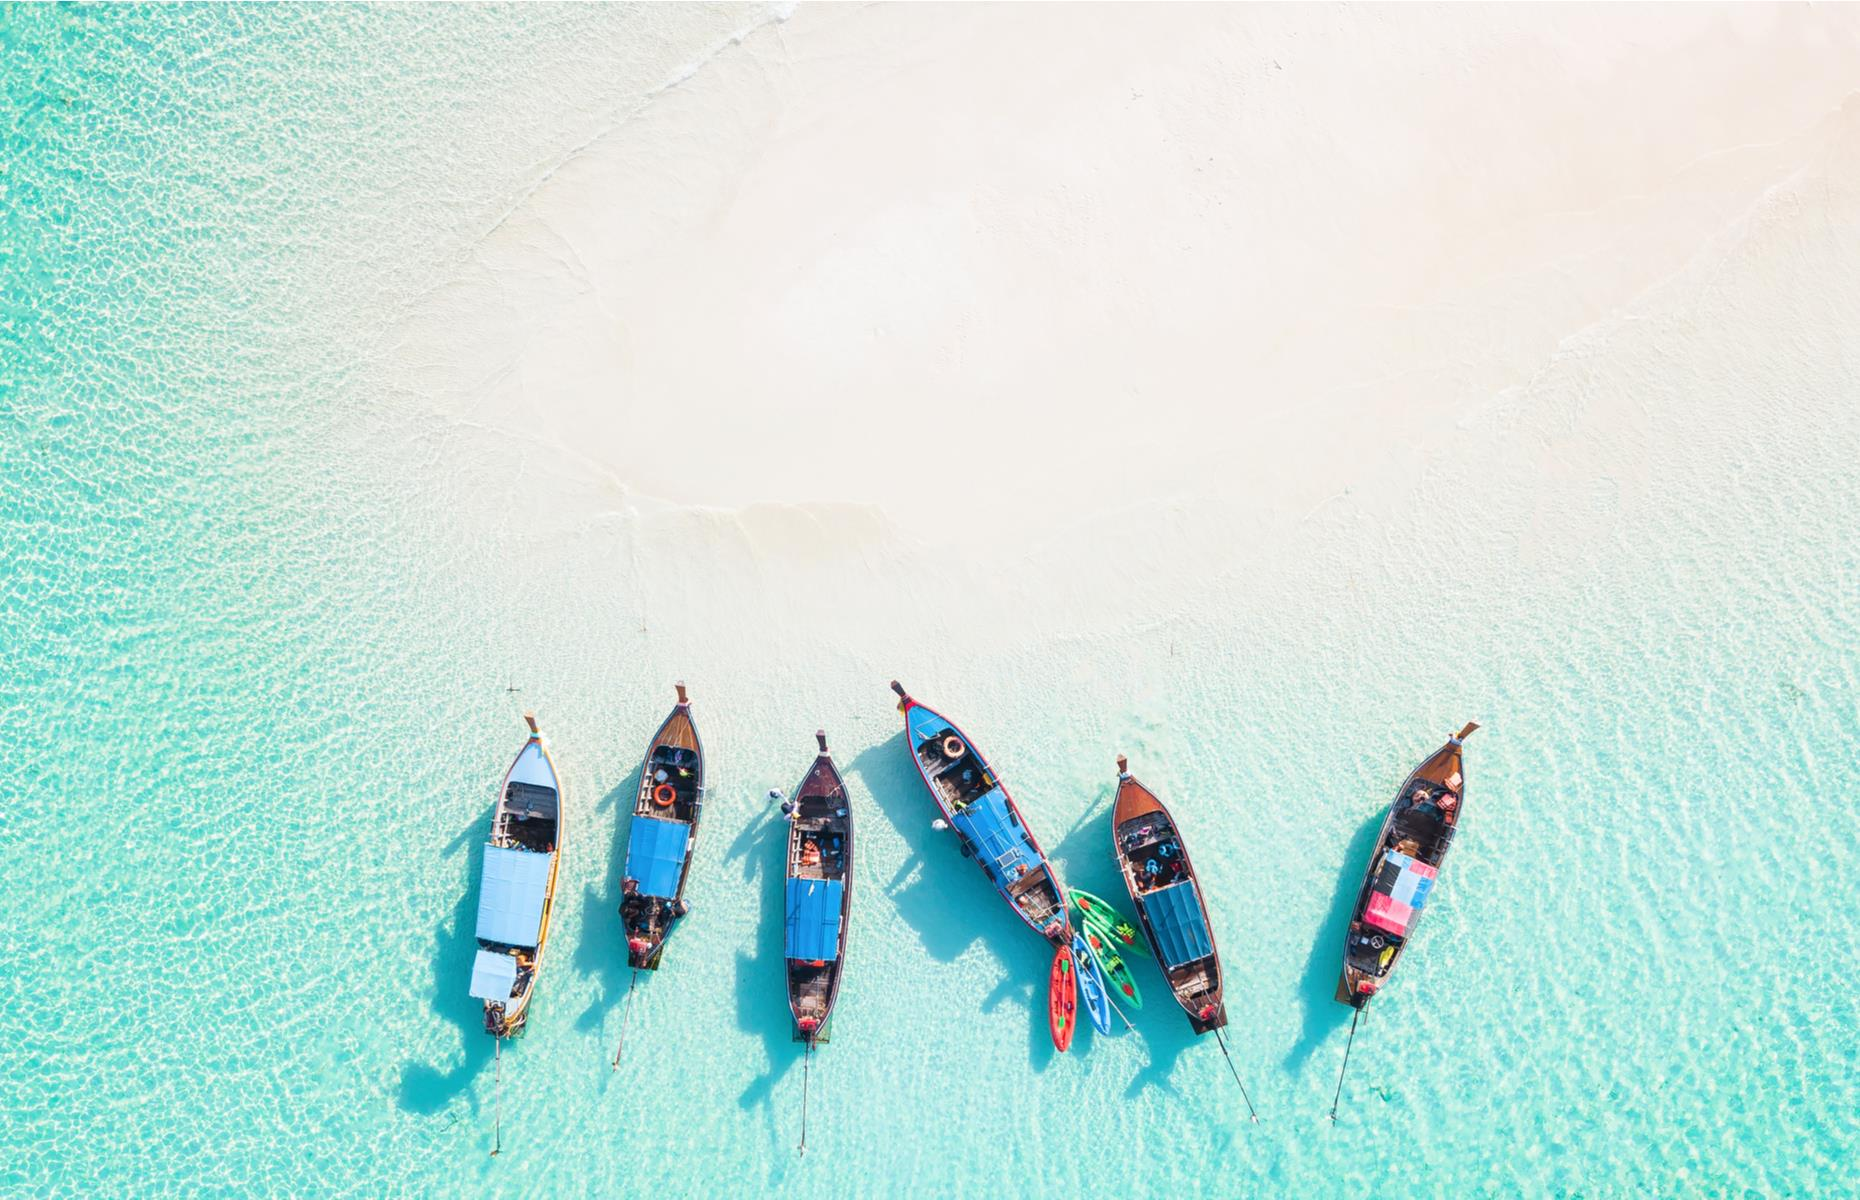 Slide 39 of 43: The Thai island of Koh Lipe floats in the Andaman Sea, fringed with sugar-white sands. From the sky you can appreciate the crystal clarity of its waters, dotted with colorful boats and filled with rich coral reefs.